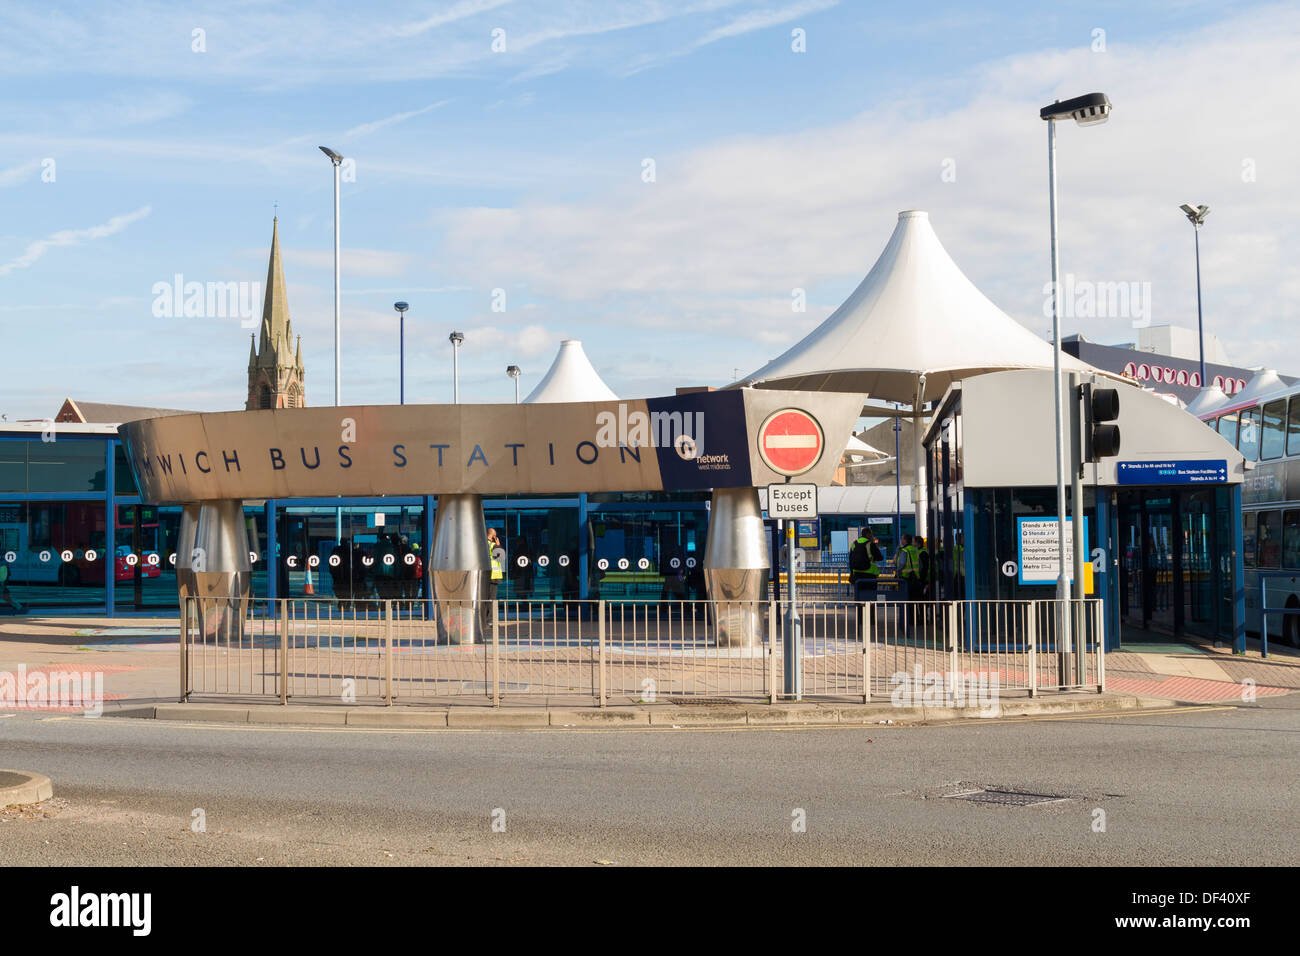 West Bromwich bus station - Stock Image